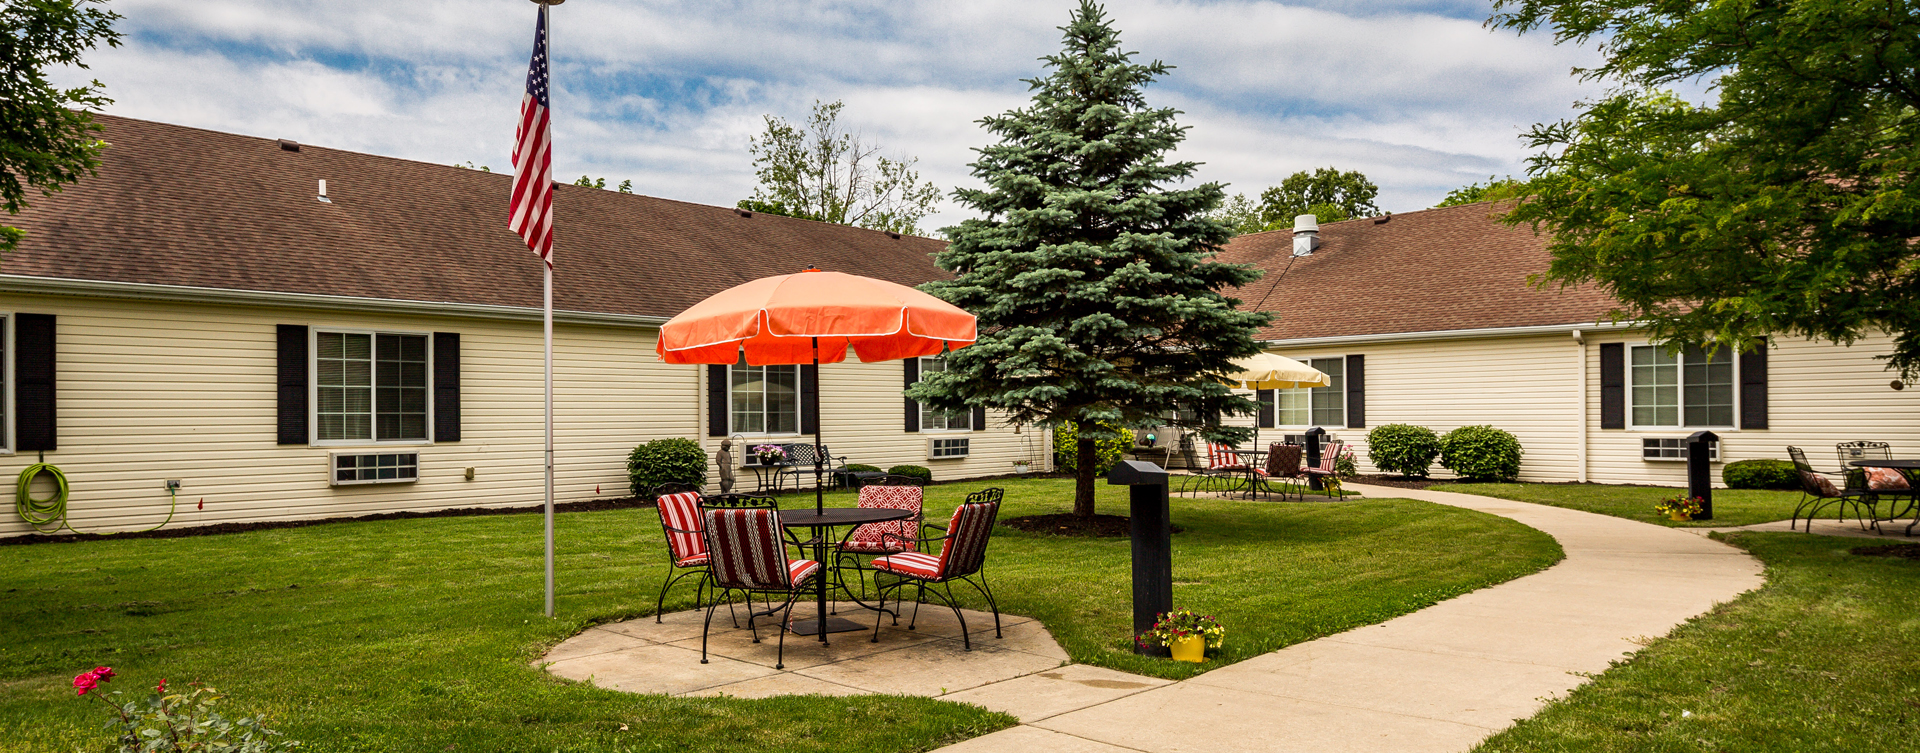 Enjoy the outdoors in a whole new light by stepping into our secure courtyard at Bickford of Battle Creek